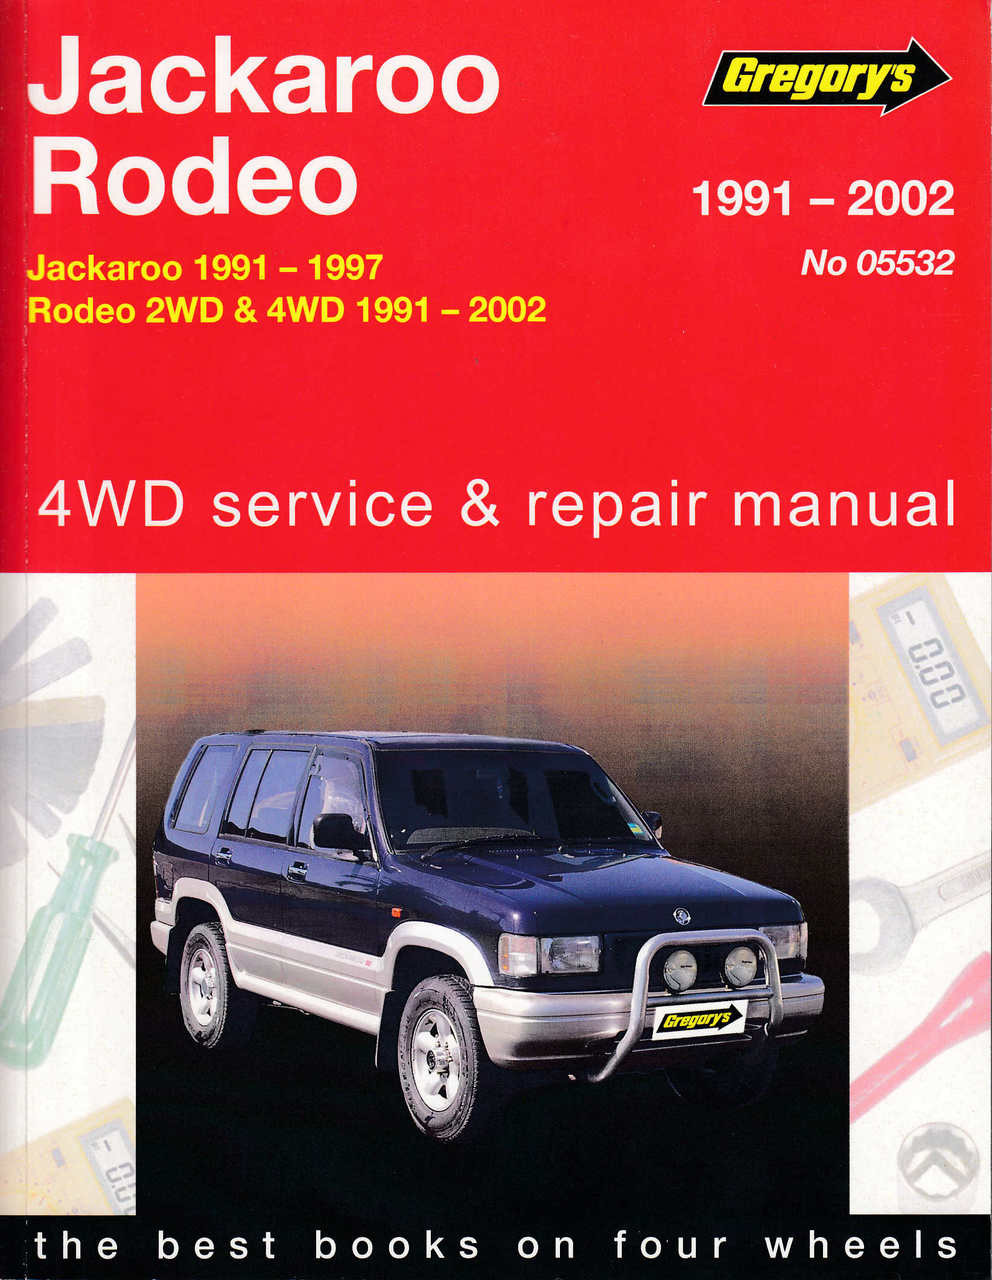 holden jackaroo and holden rodeo 1991 2002 workshop manual rh automotobookshop com au 2005 Holden Rodeo Holden Rodeo Ute